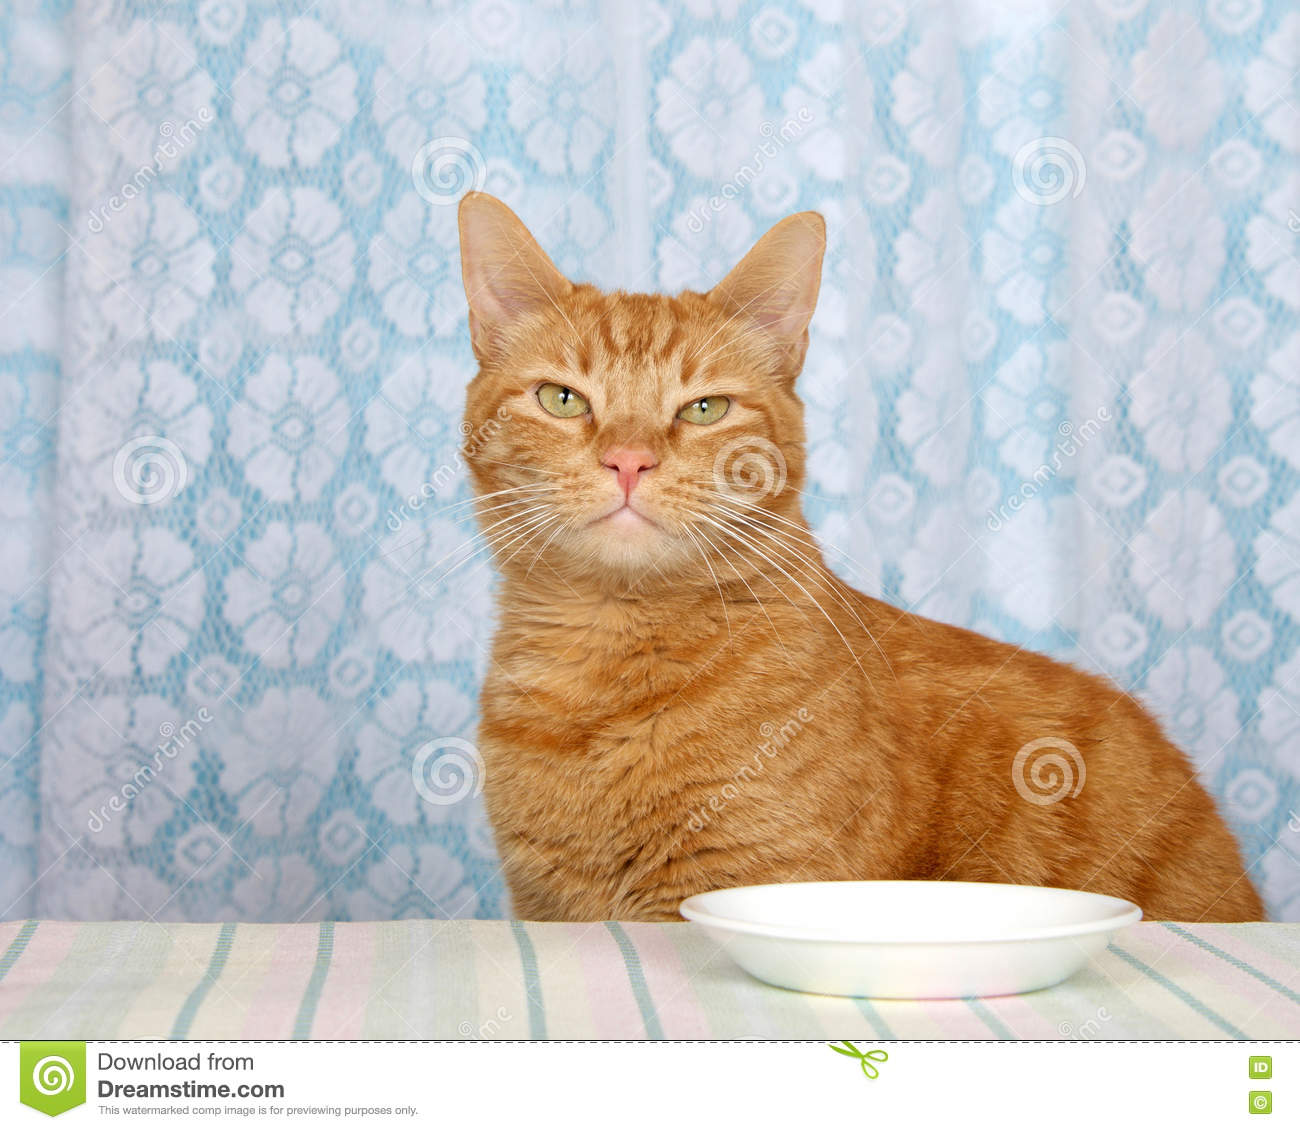 Young Orange Tabby Cat Sitting At Kitchen Counter With